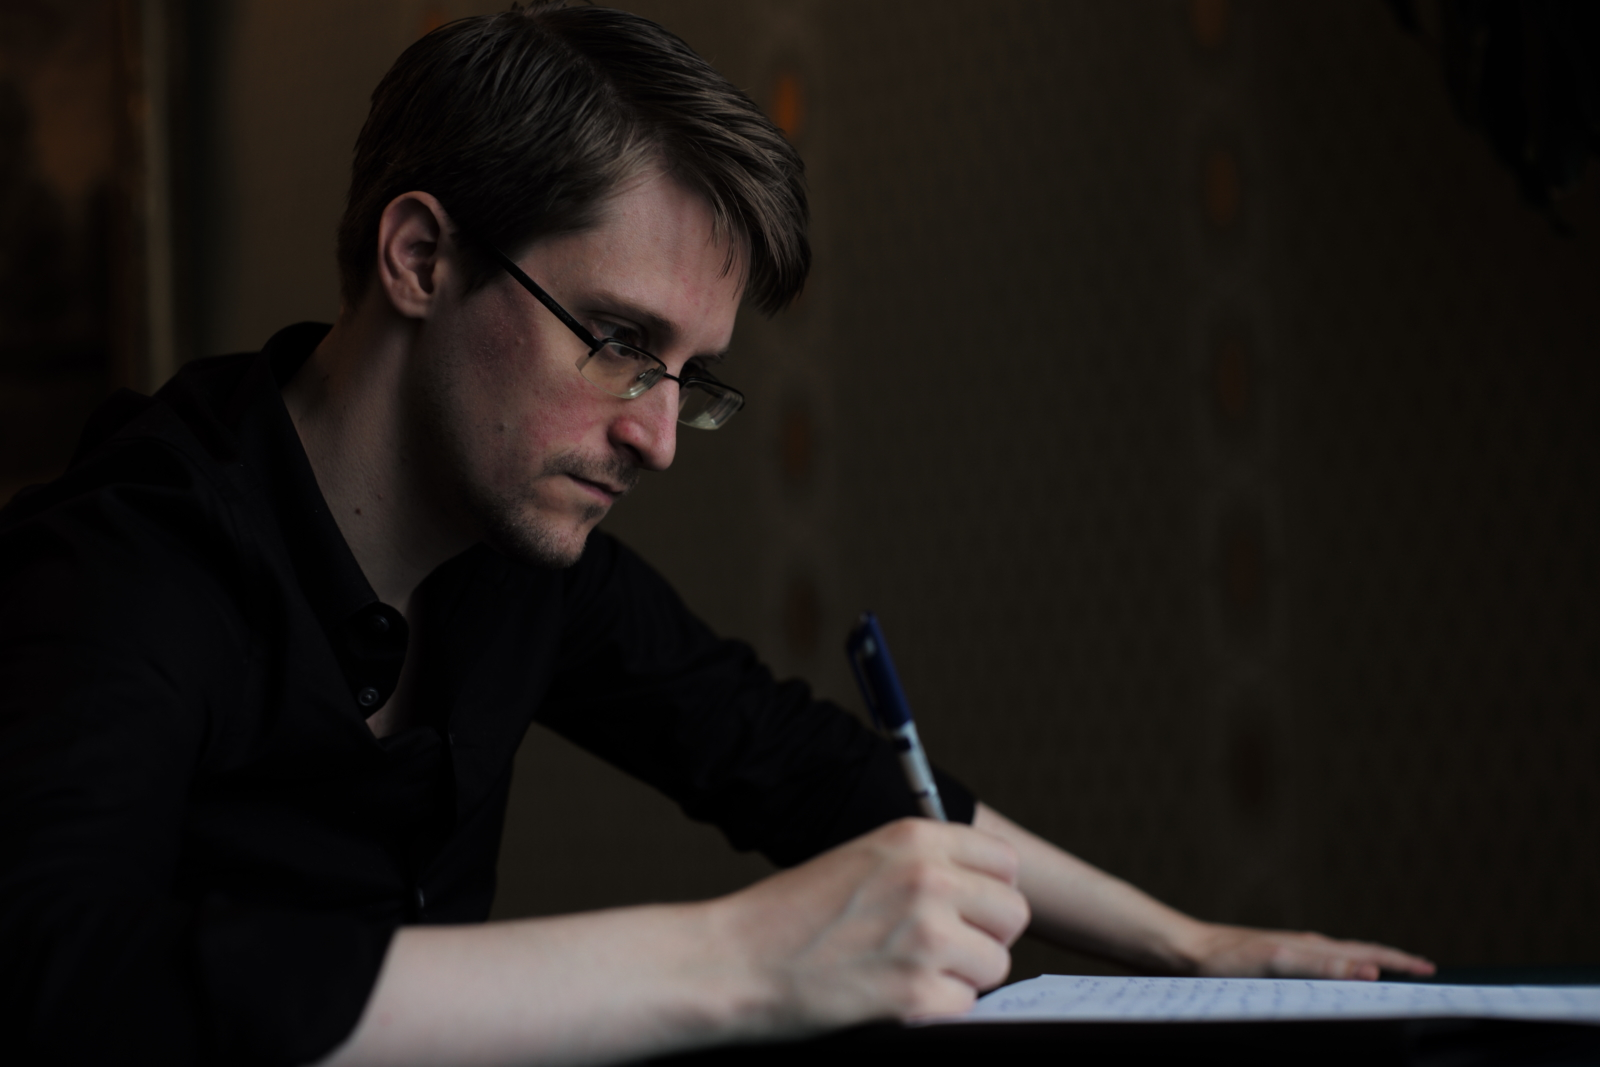 """Edward Snowden: """"Your support keeps me company during the fight."""""""